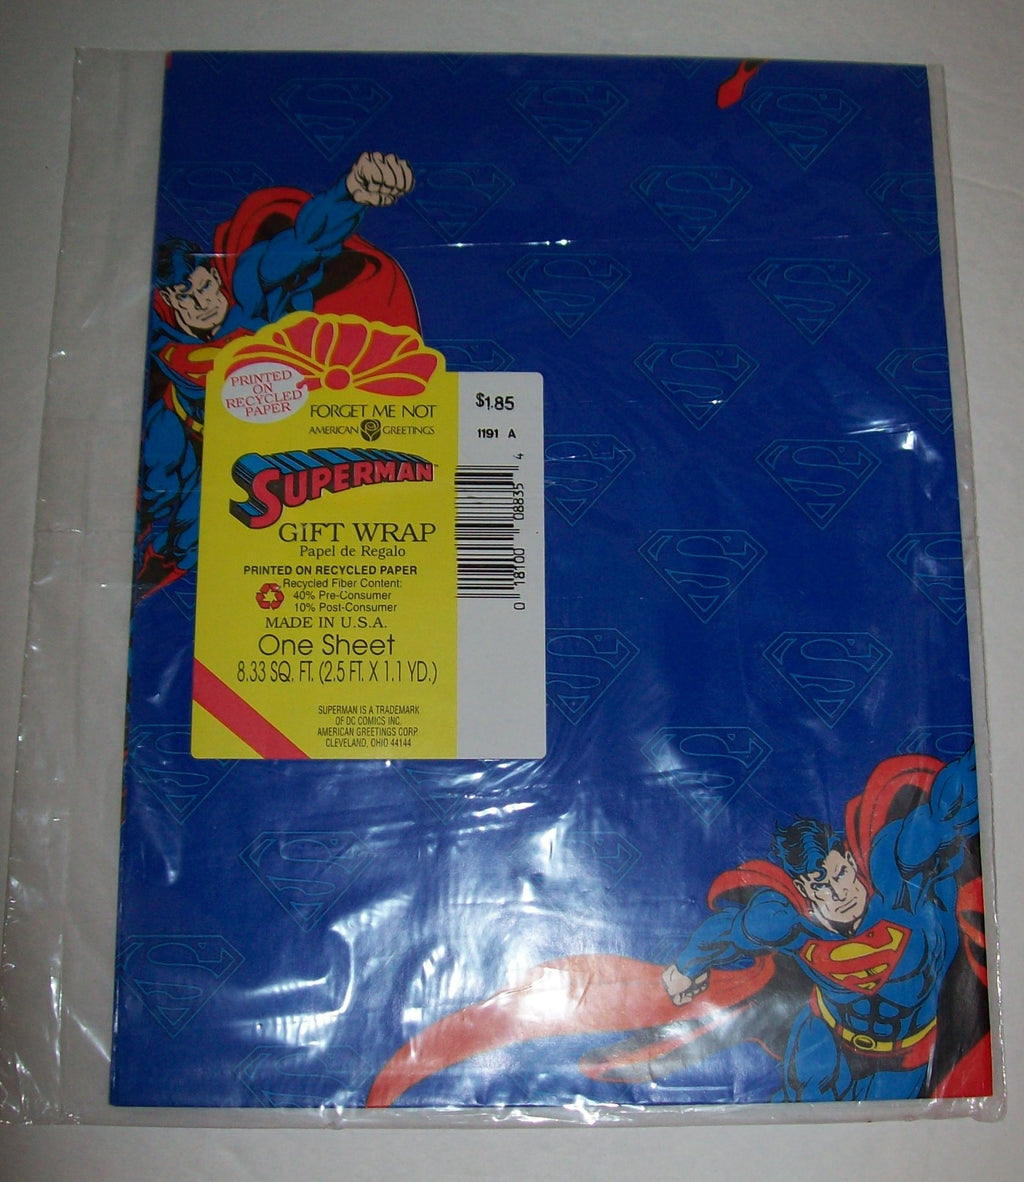 Superman wrapping paper by forget me not we got character superman wrapping paper by forget me not m4hsunfo